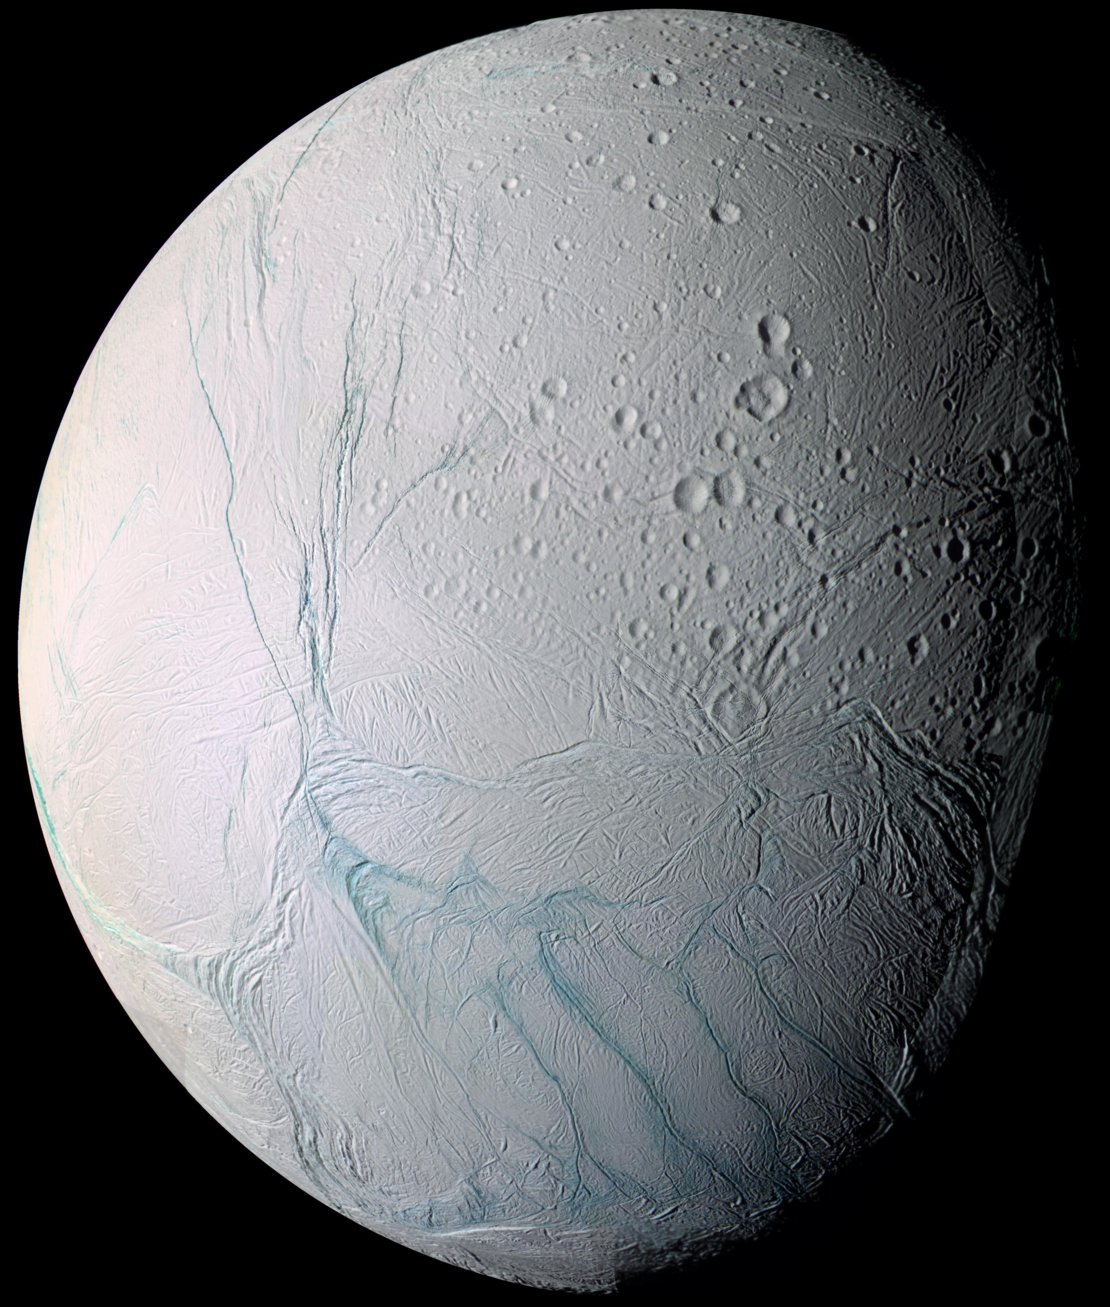 Enceladus' craters and complex, fractured terrains